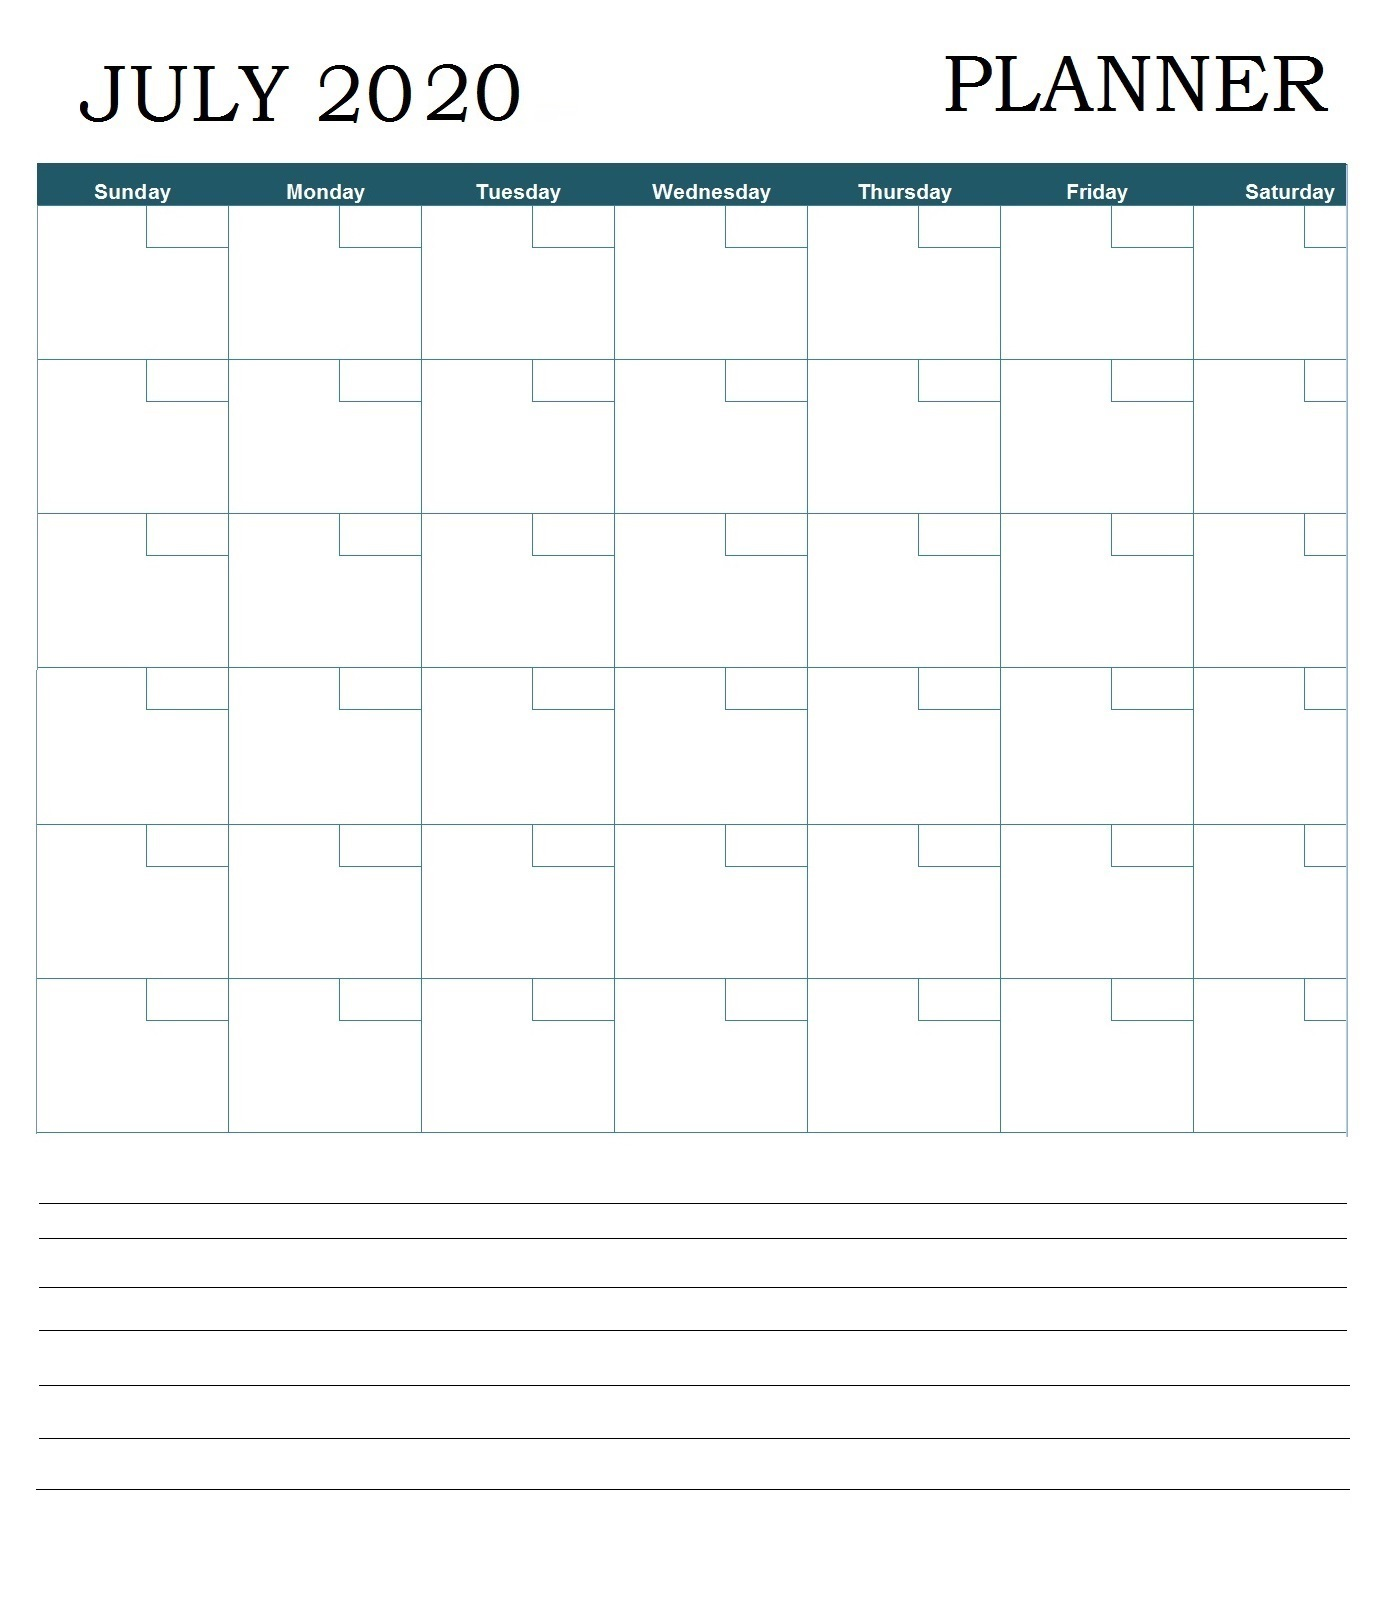 July 2020 Professional Desk Calendar